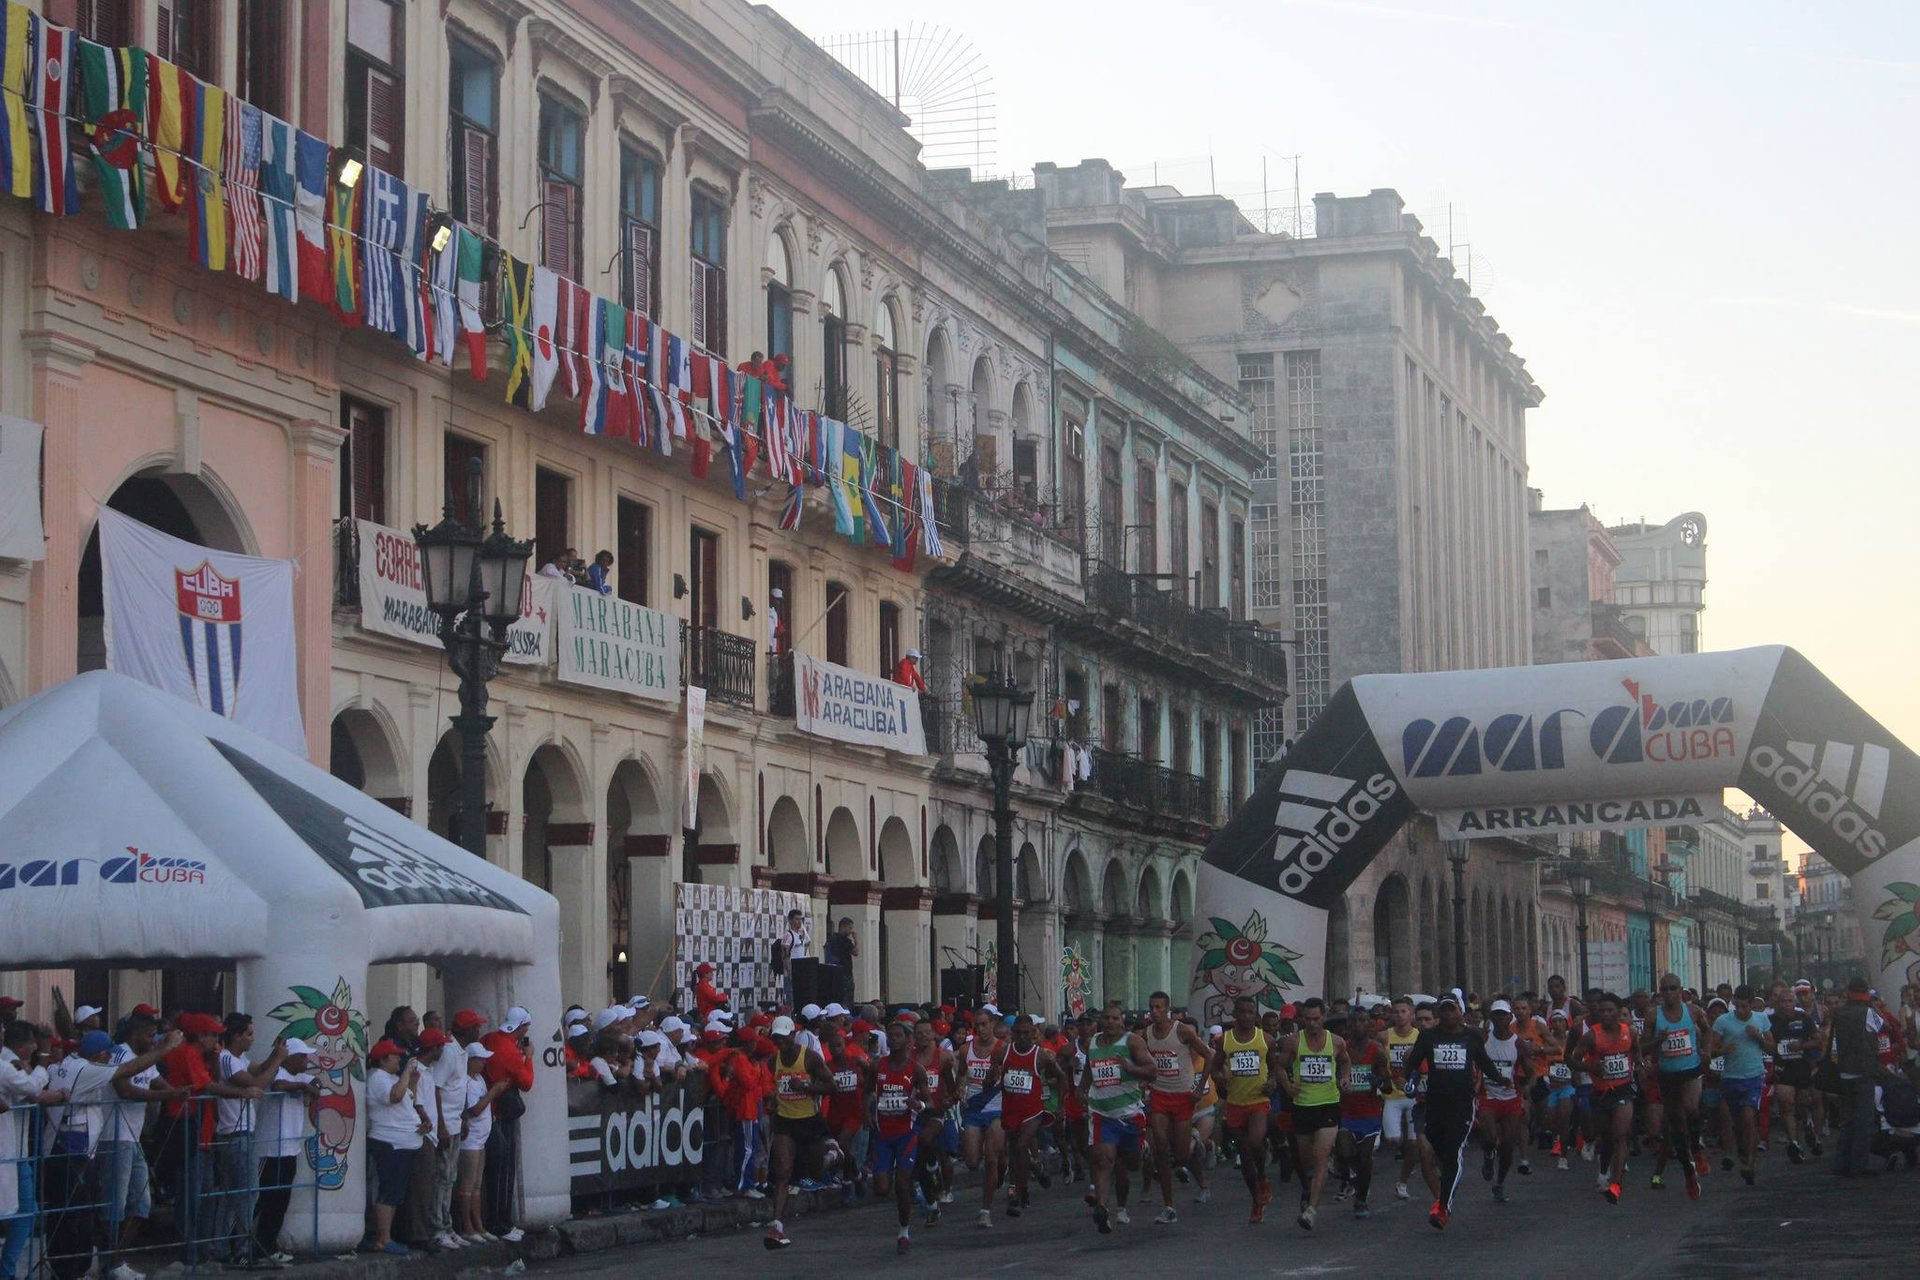 Best time for Marabana: Havana Marathon in Cuba